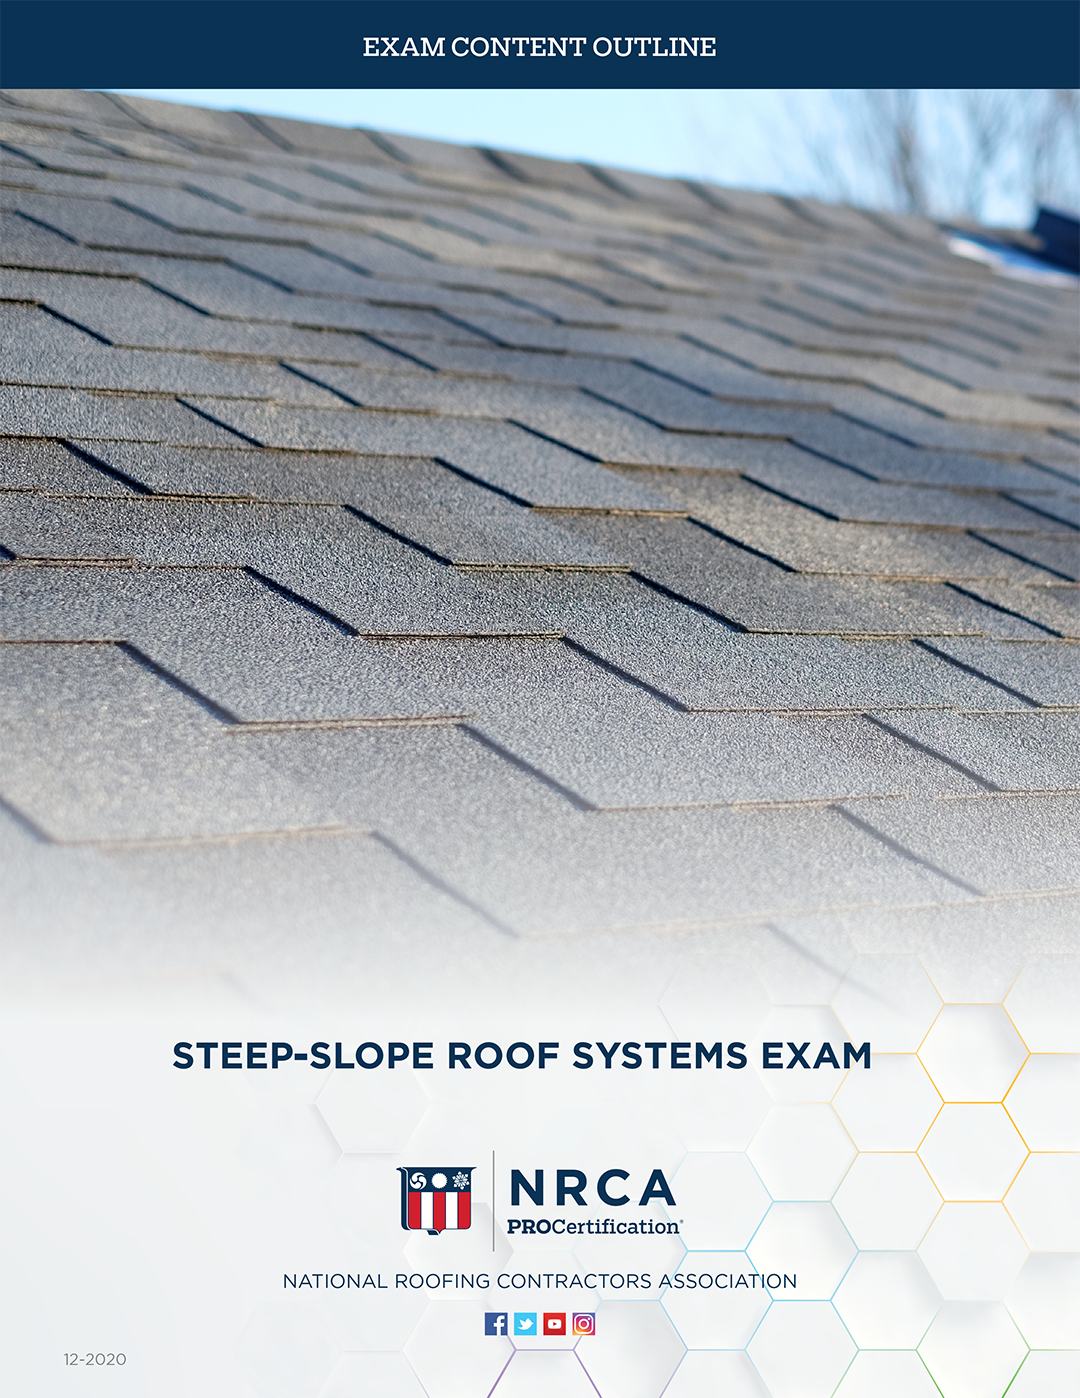 Steep-slope Roof Systems Exam Content Outline